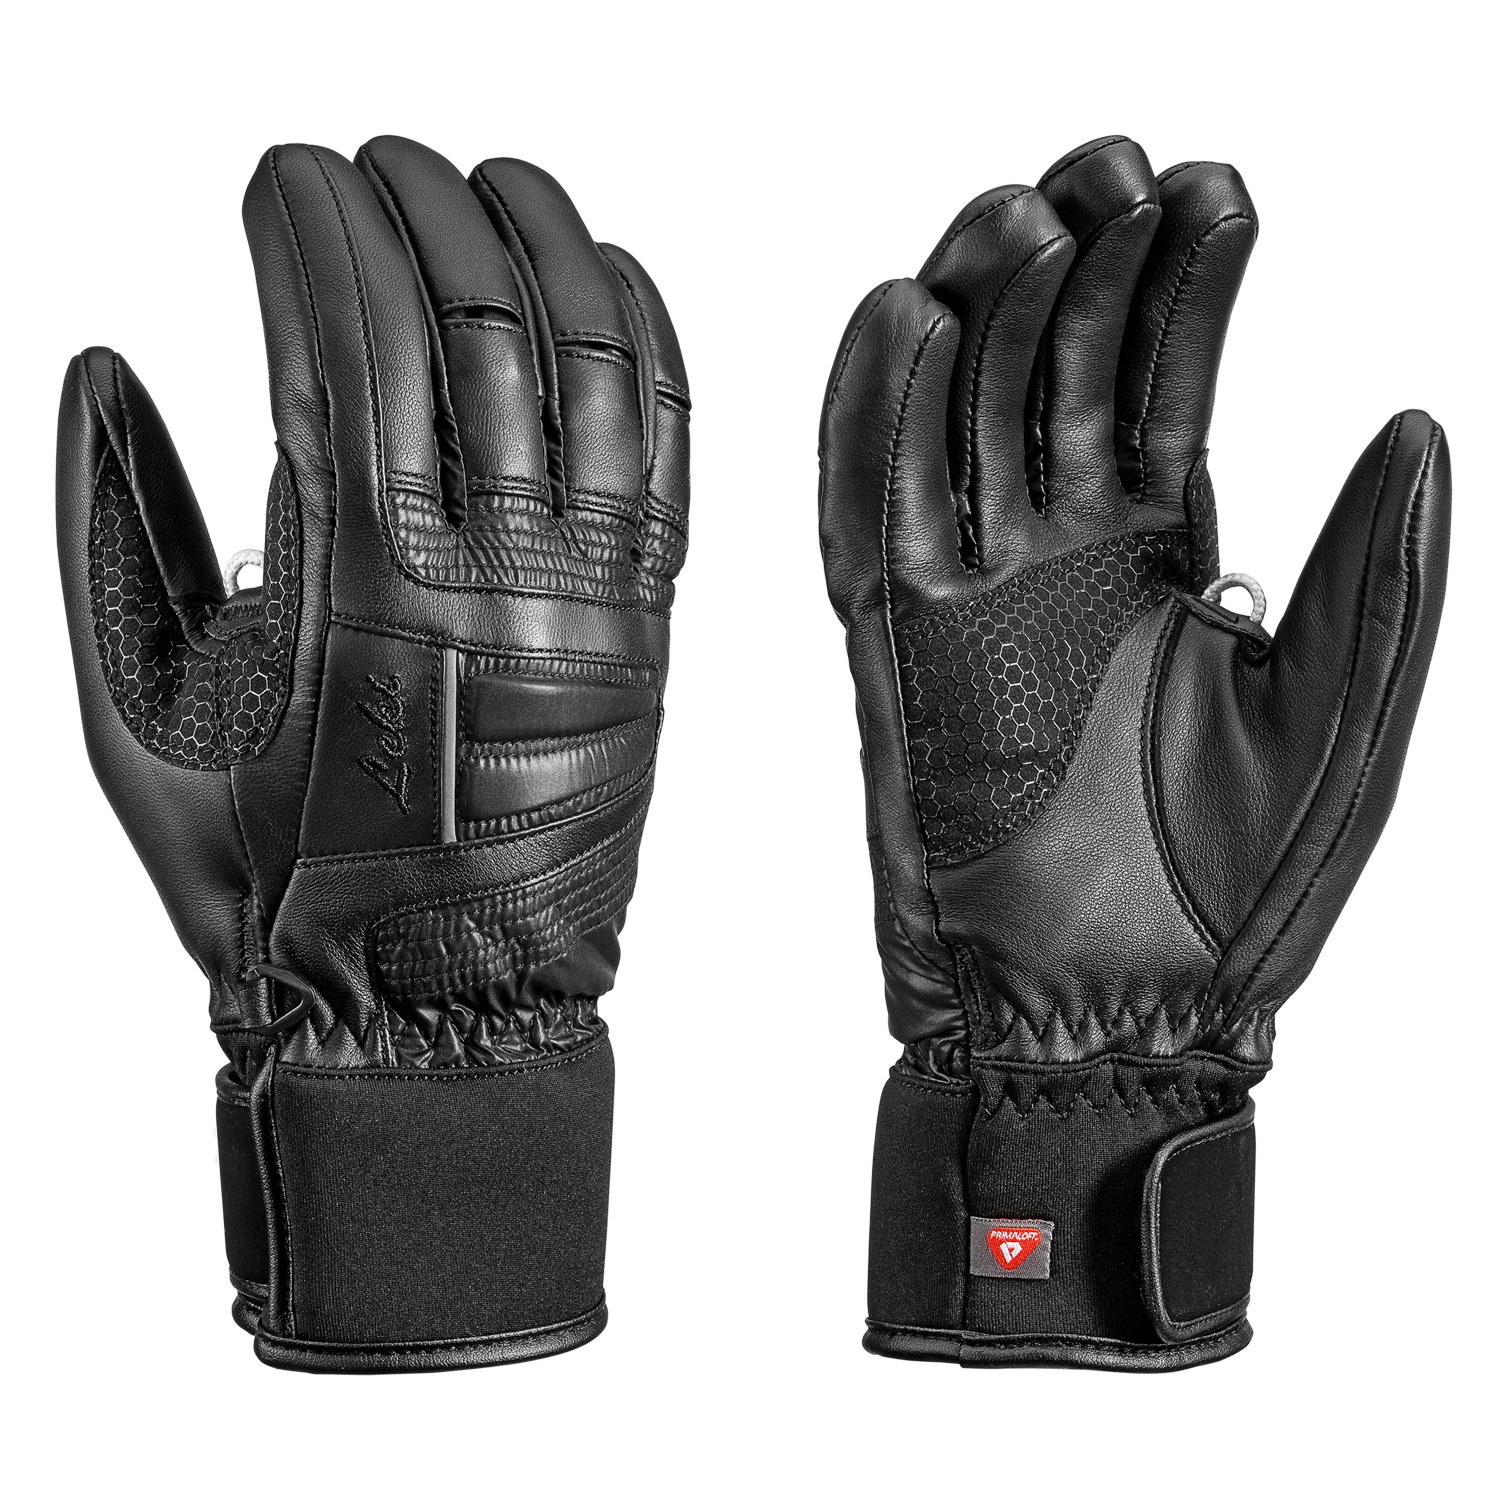 Womens leather gloves thinsulate lining -  Thinsulate Gloves Womens Gloves